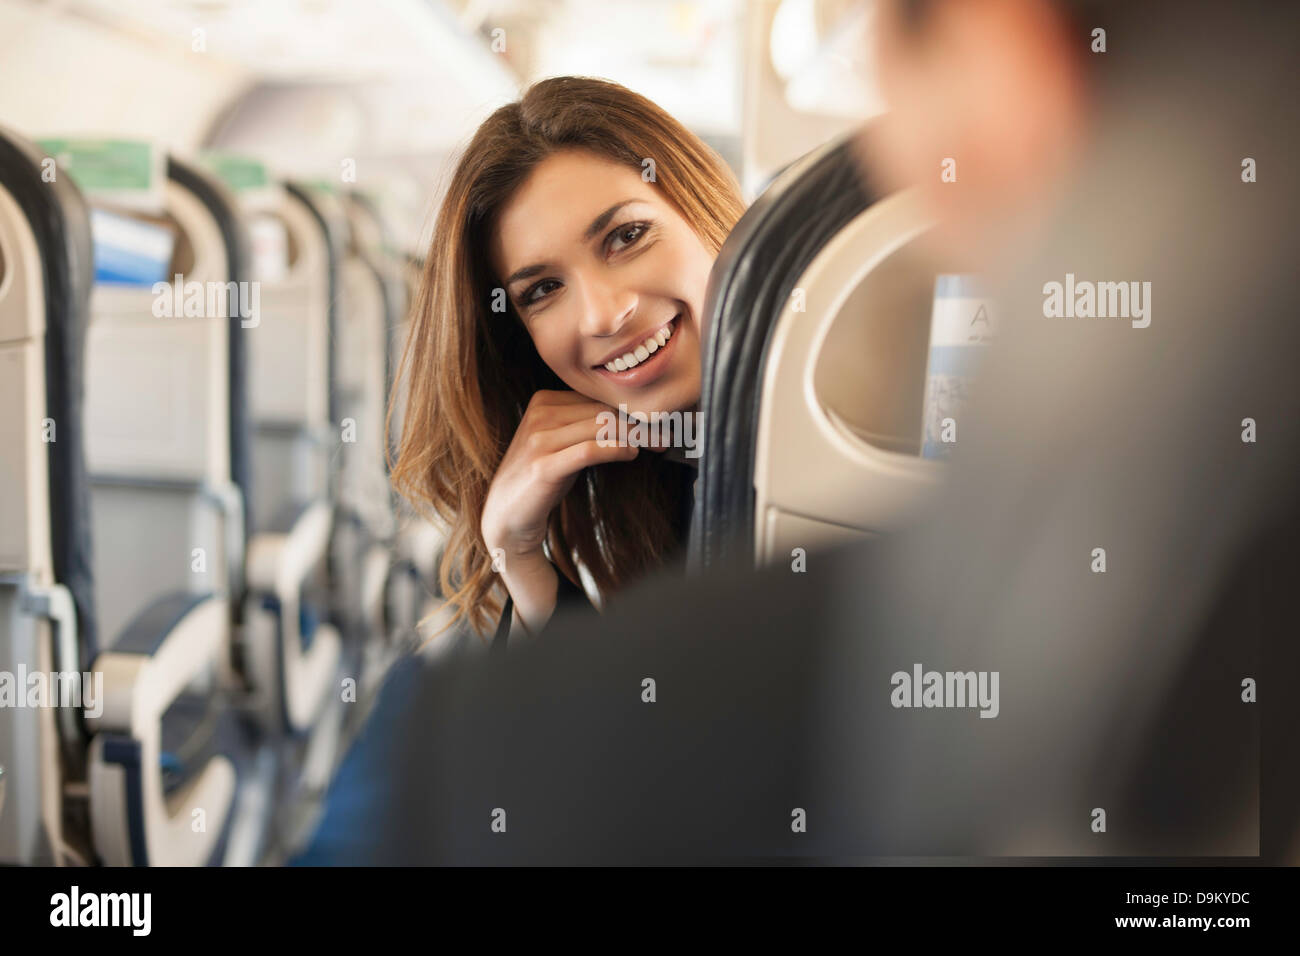 Female passenger turning around on aeroplane - Stock Image